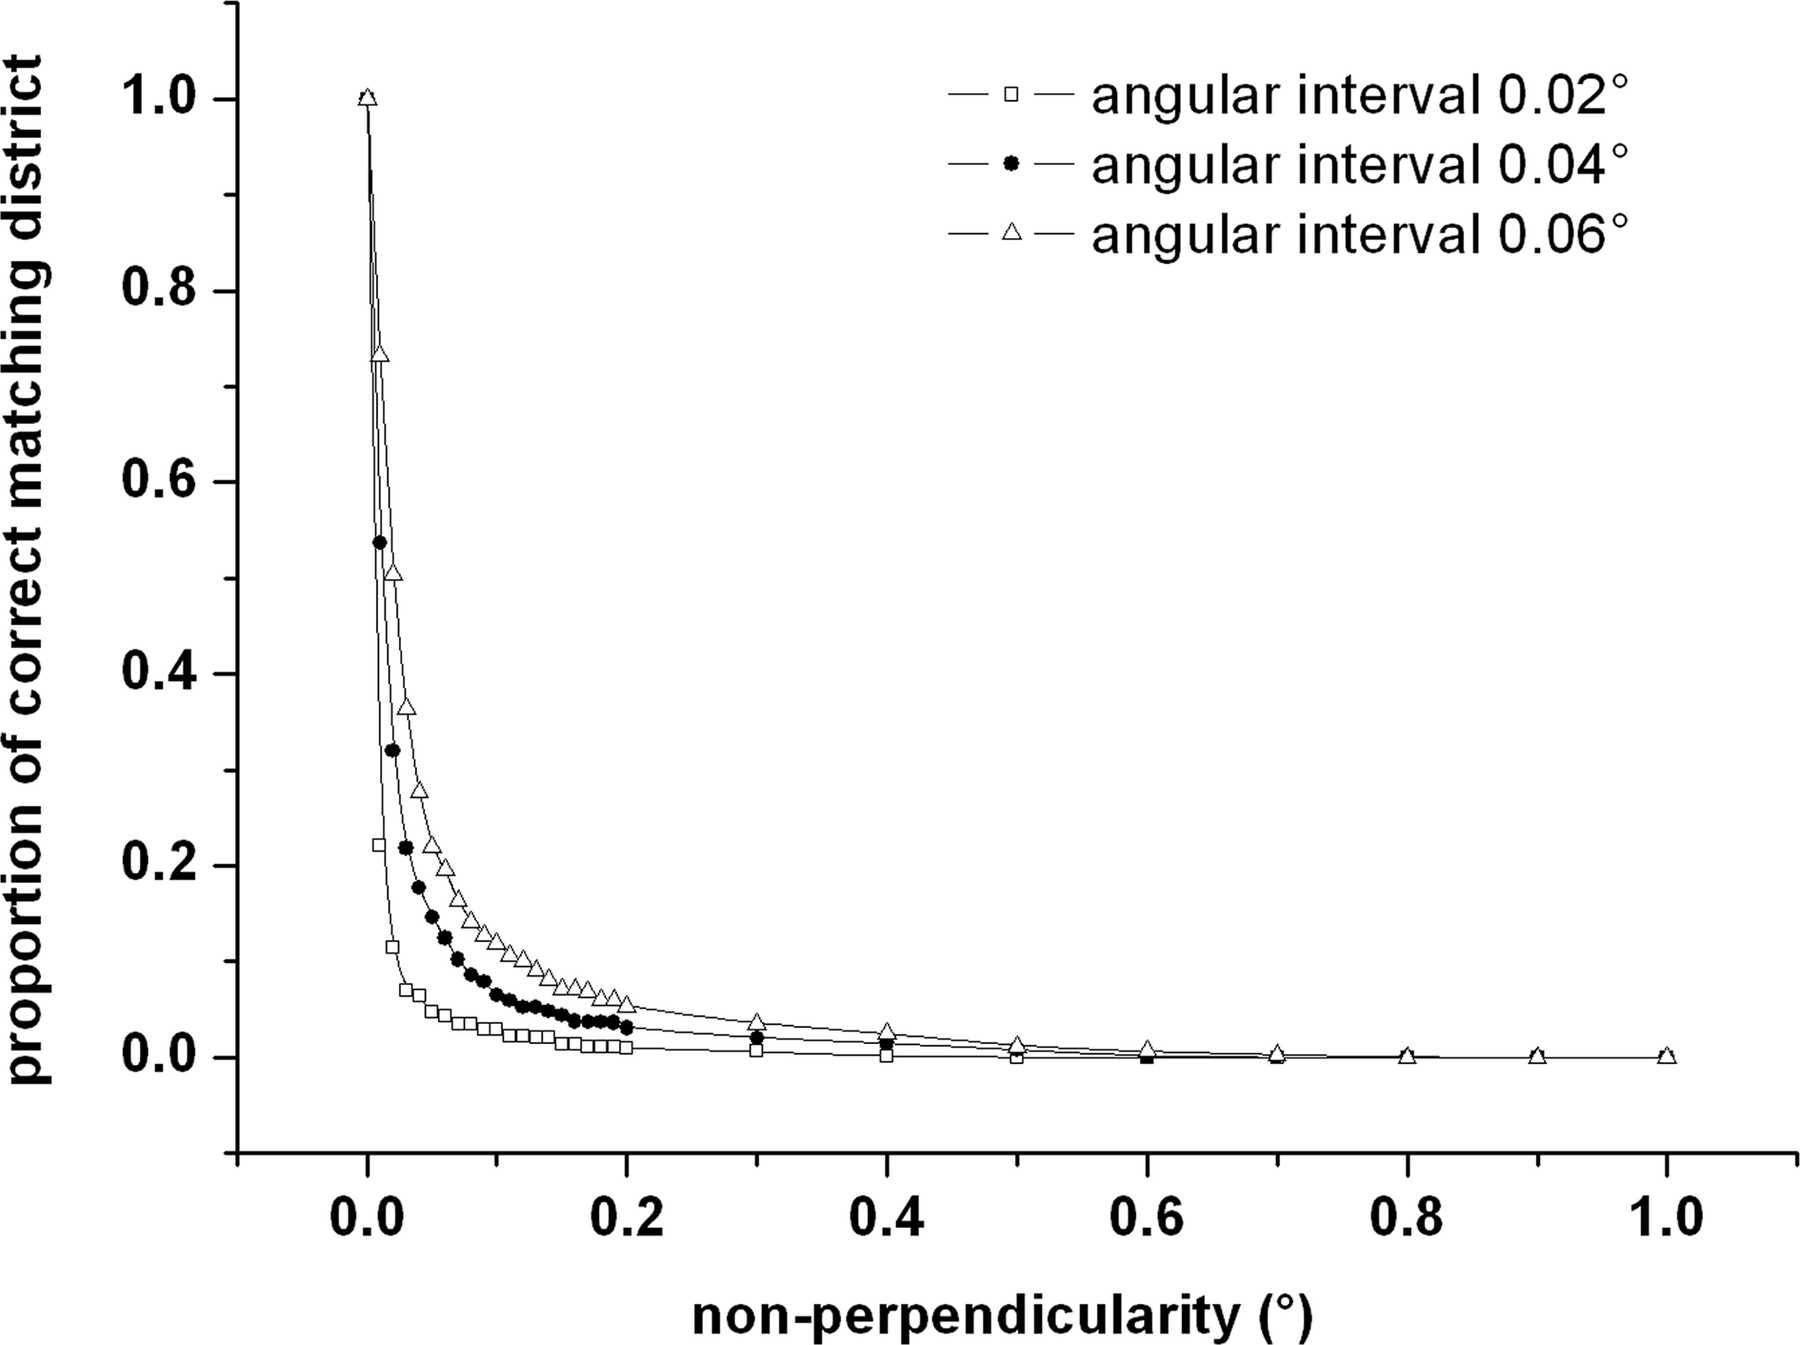 IUCr) Characteristics of Friedel pairs and diffraction